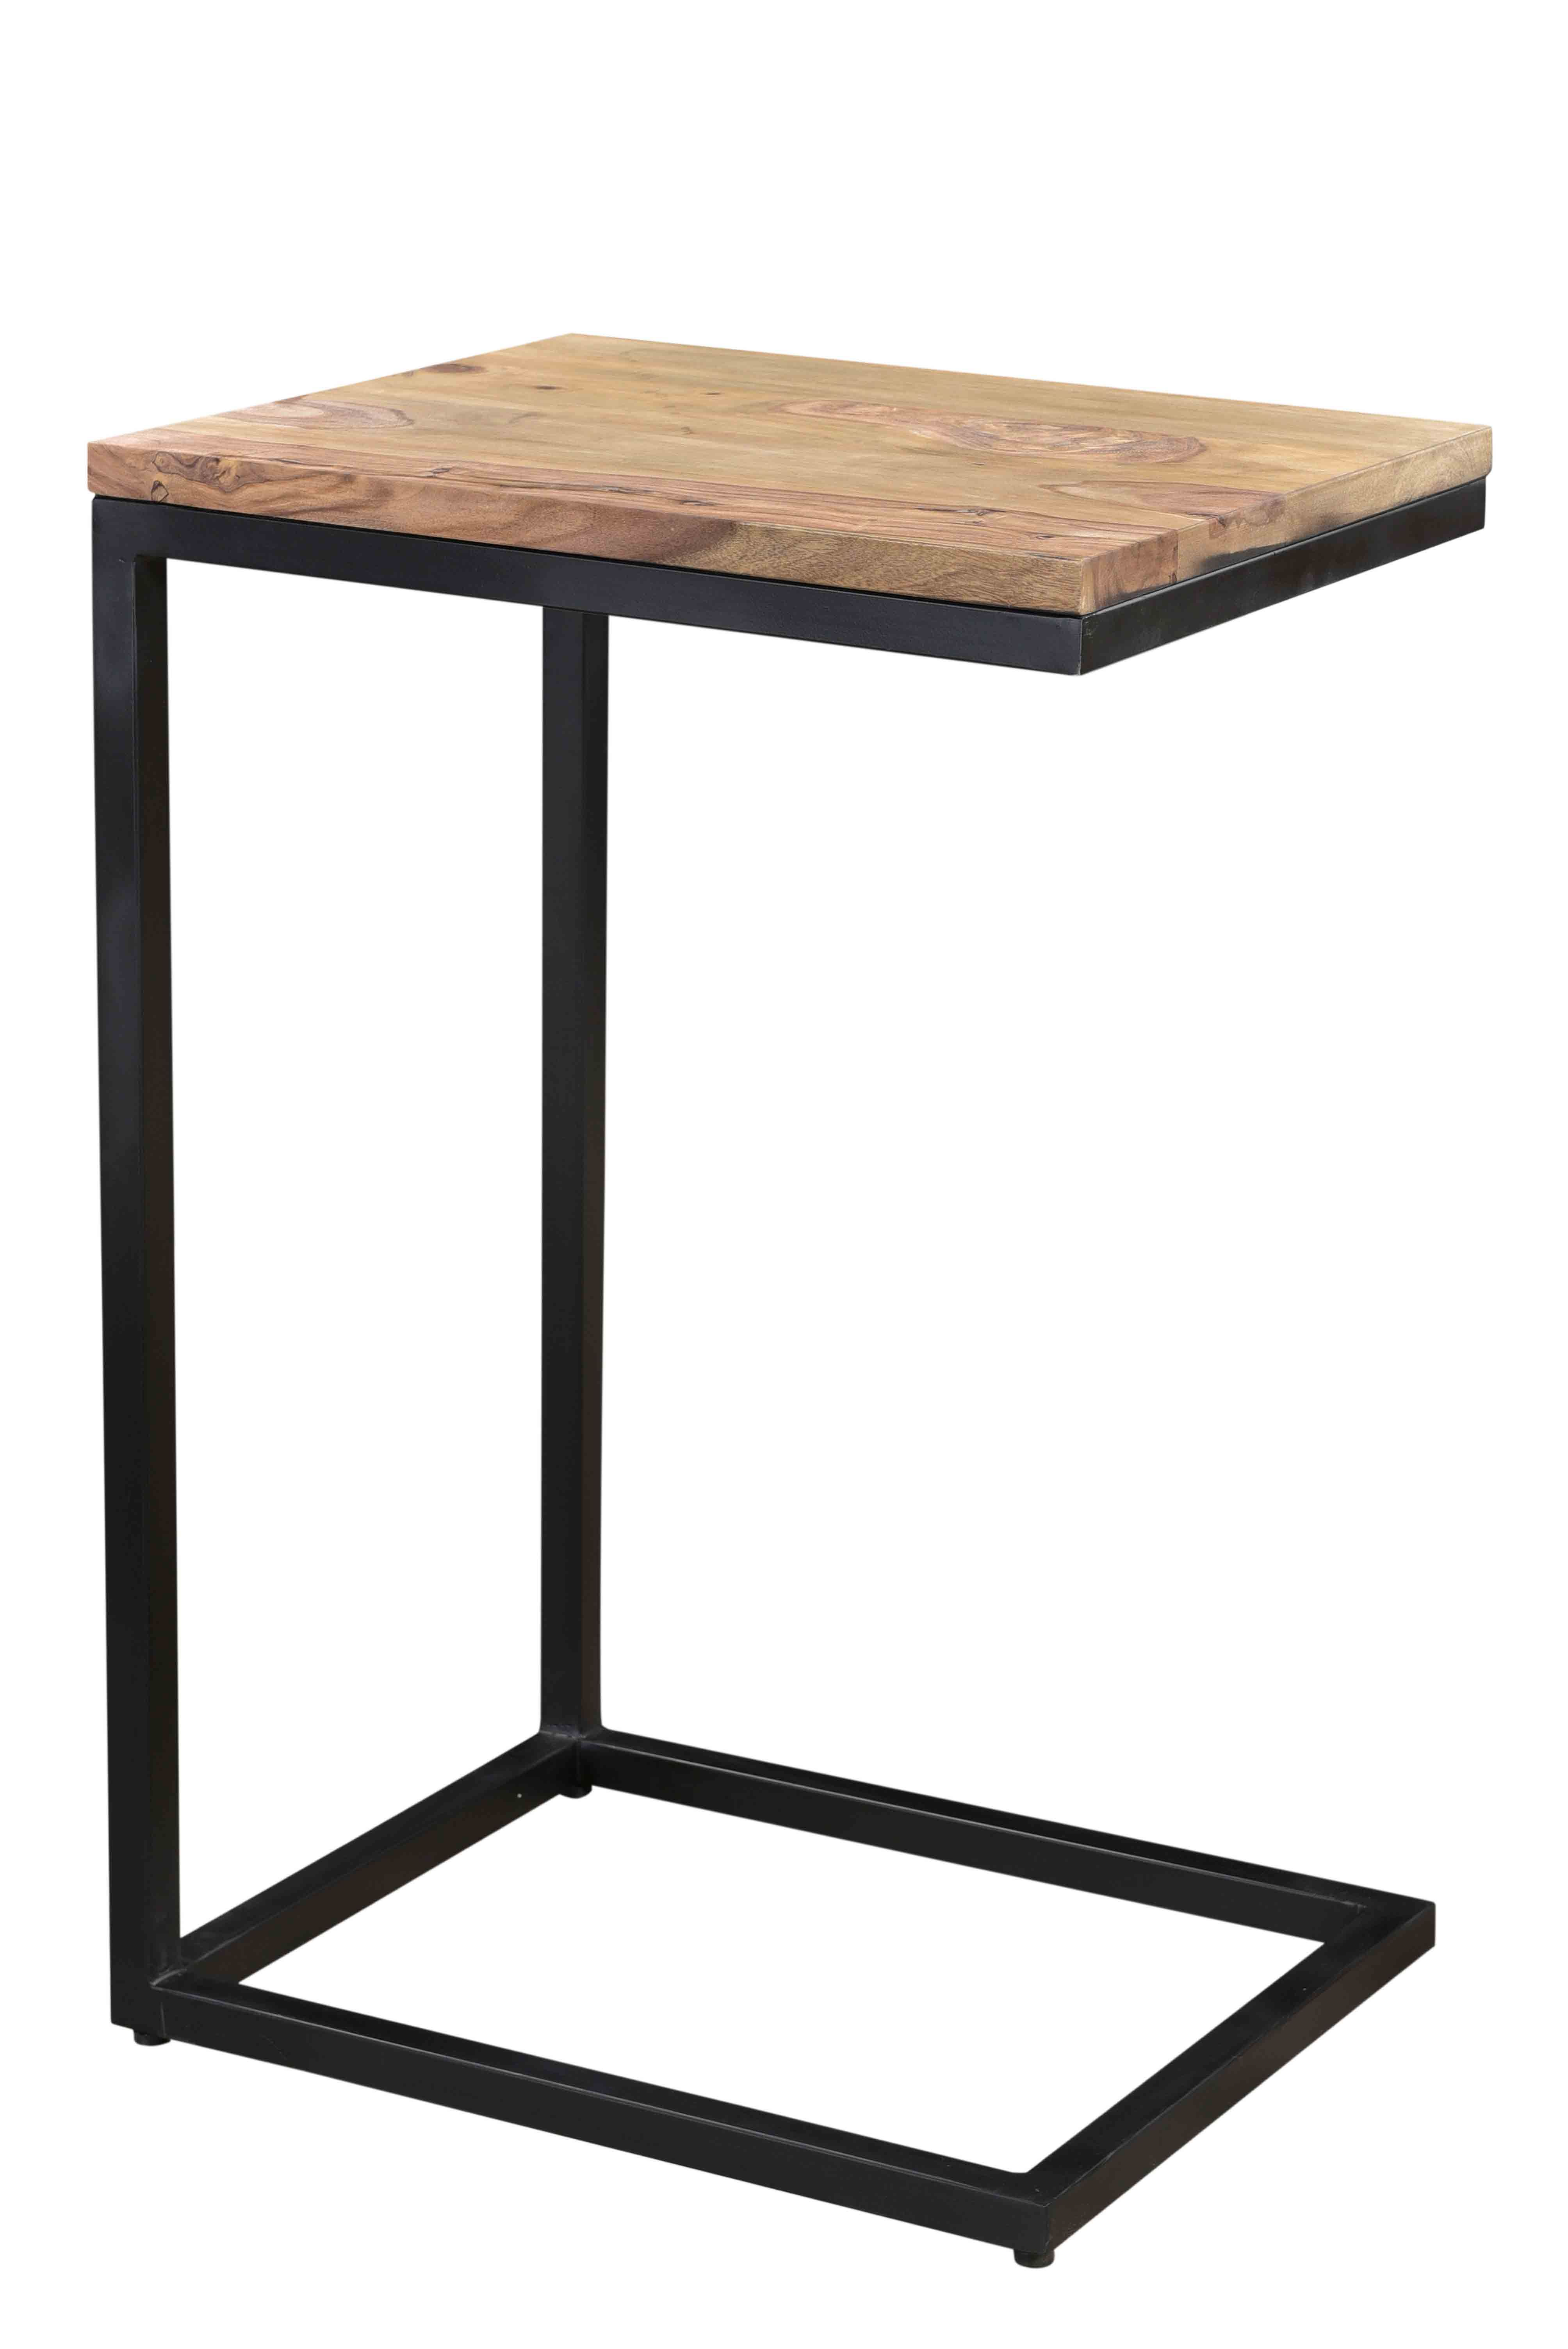 Enfield Driftwood Coffee Table With Storage Driftwood Coffee Table Coffee Table With Storage Coffee Table Wood [ 800 x 1198 Pixel ]